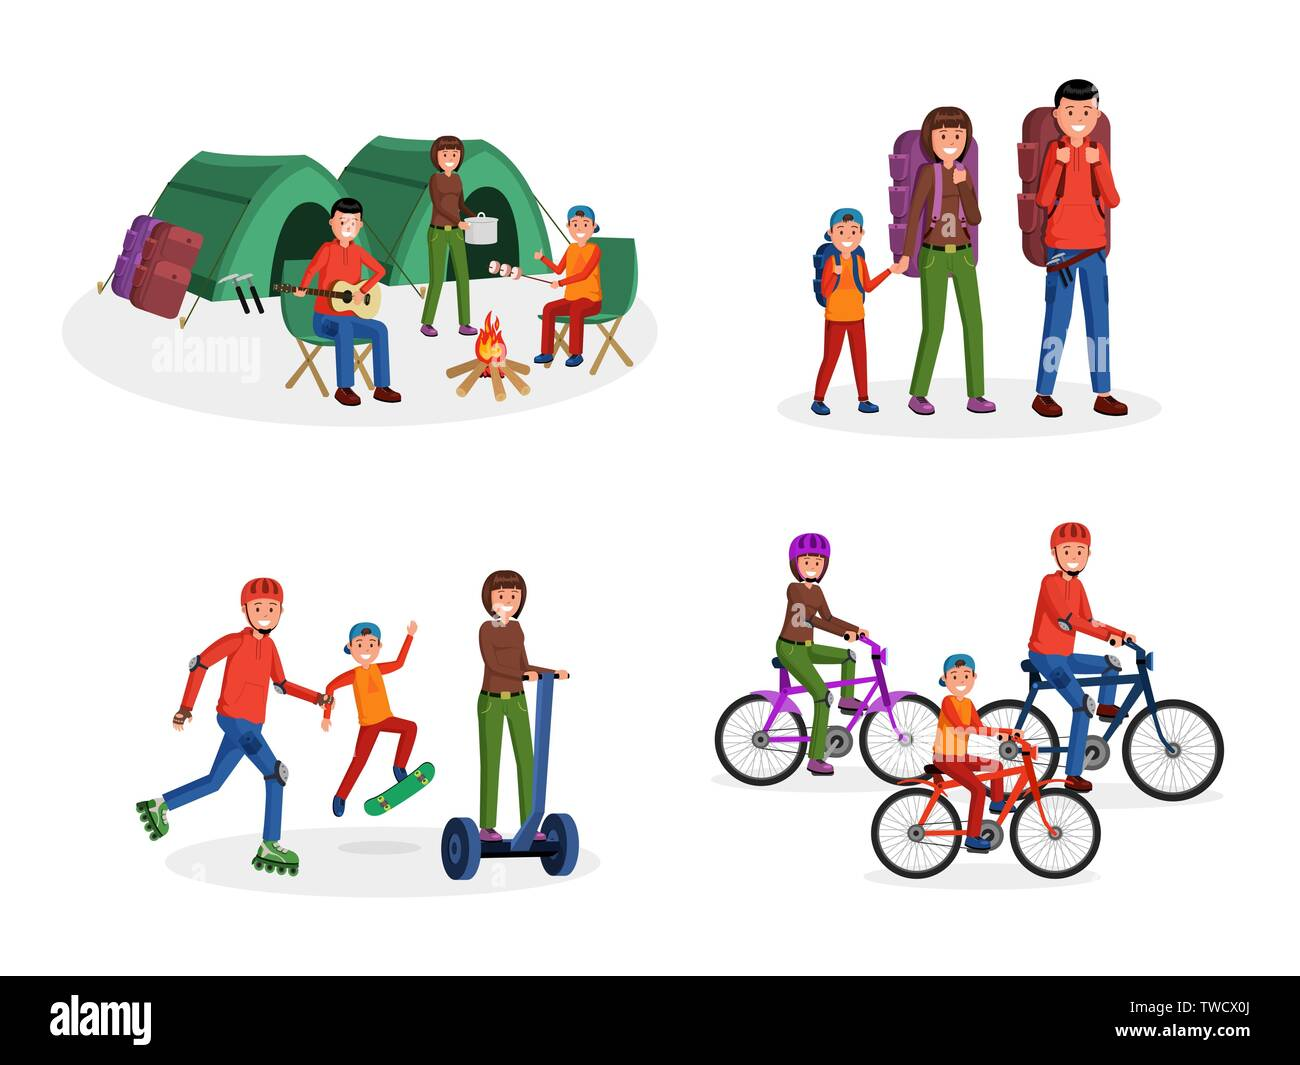 Joyful cartoon parents with children travelling, riding bike scateboard, going camping with tents vector illustration set. Mother father and kid living active lifestyle. Isolated on white - Stock Vector